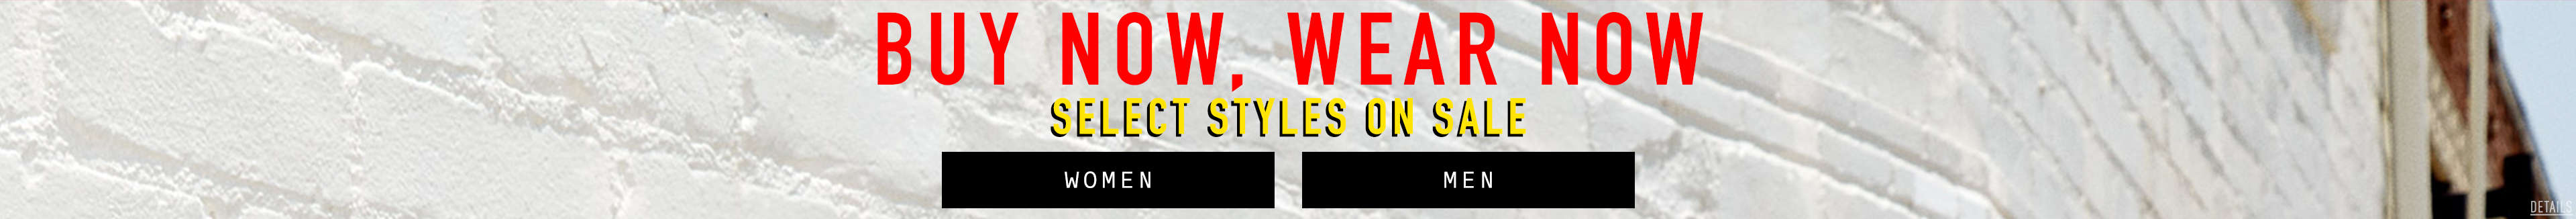 Select styles on sale